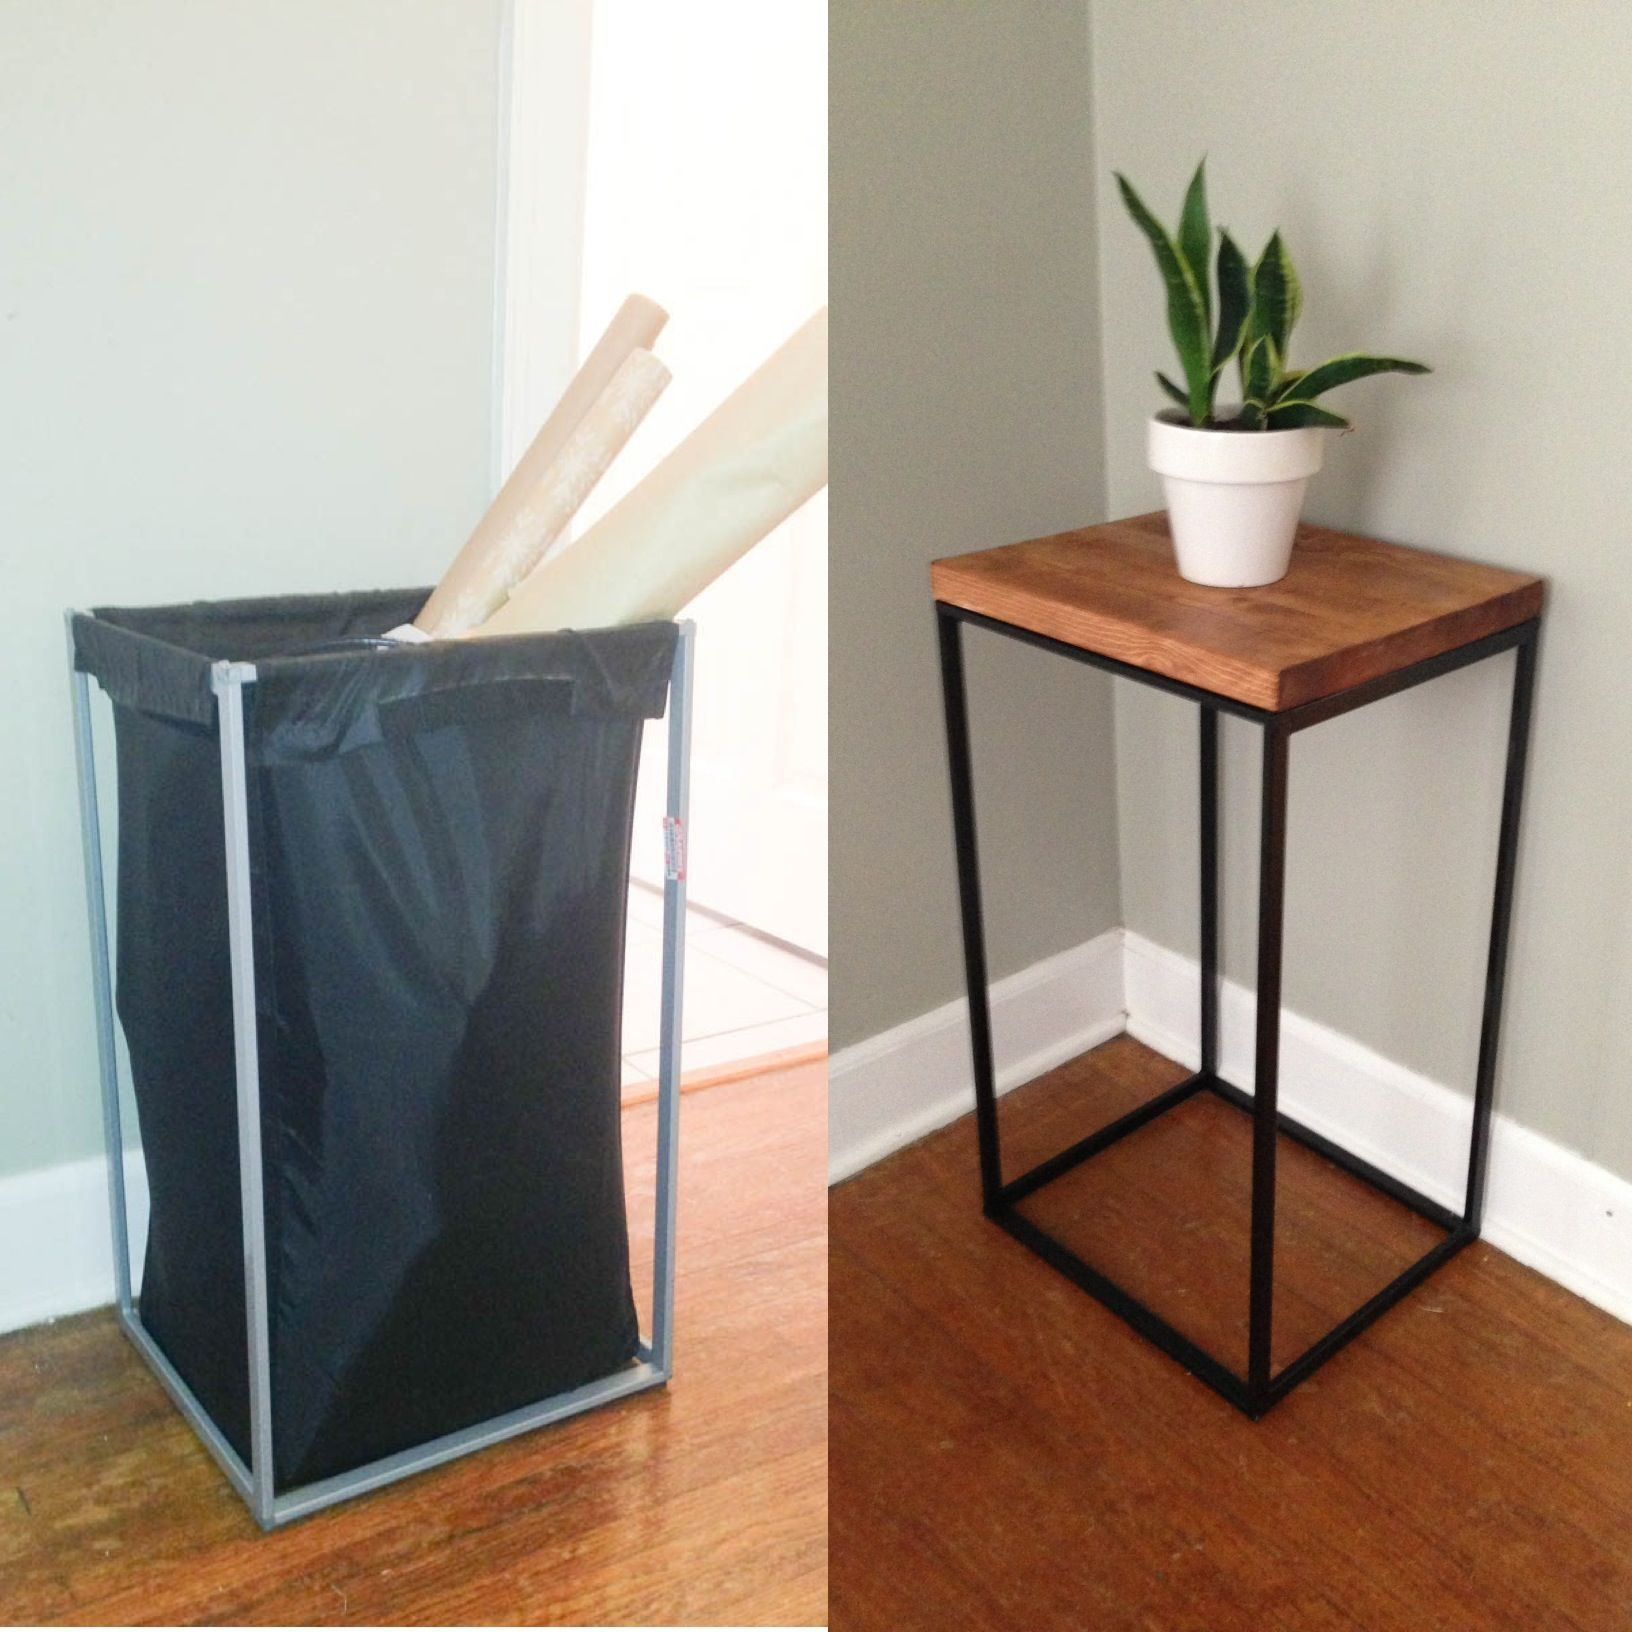 DIY Side Table From Old Ikea Laundry Hamper// The Clever Bunny// Www